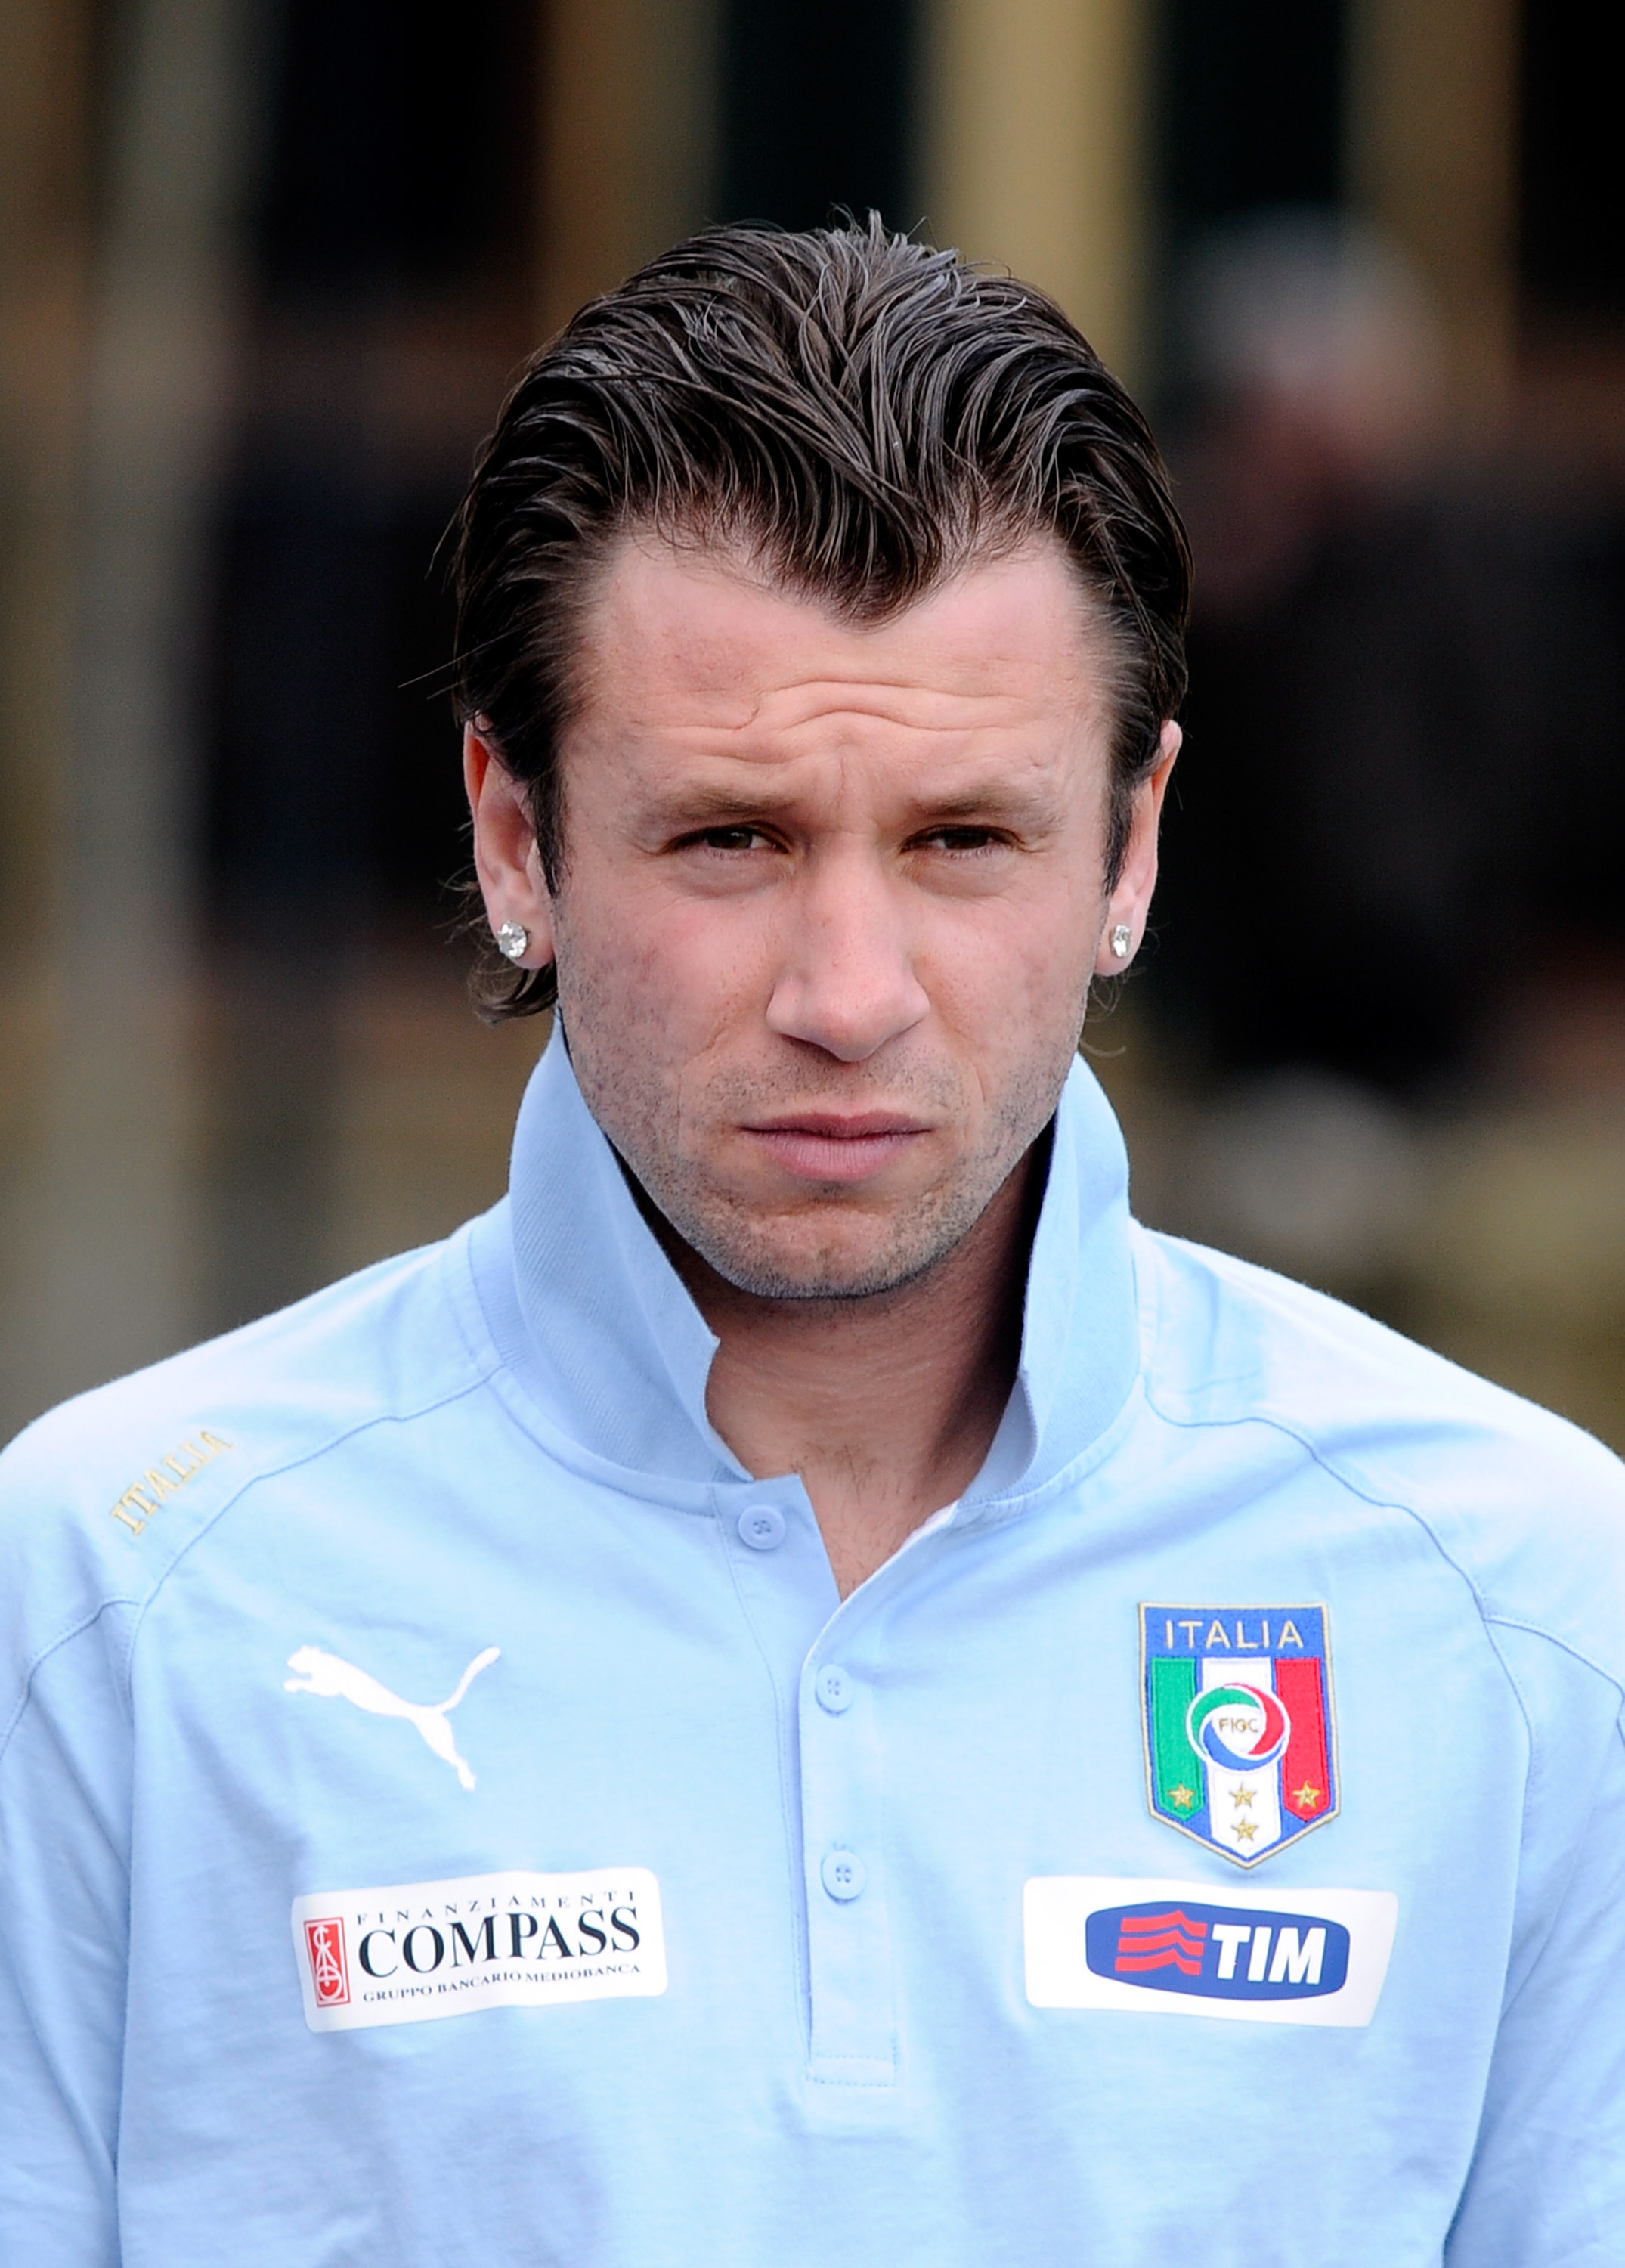 FLORENCE, ITALY - MARCH 21:  Antonio Cassano of Italy during the Training Session at Coverciano on March 21, 2011 in Florence, Italy.  (Photo by Claudio Villa/Getty Images)